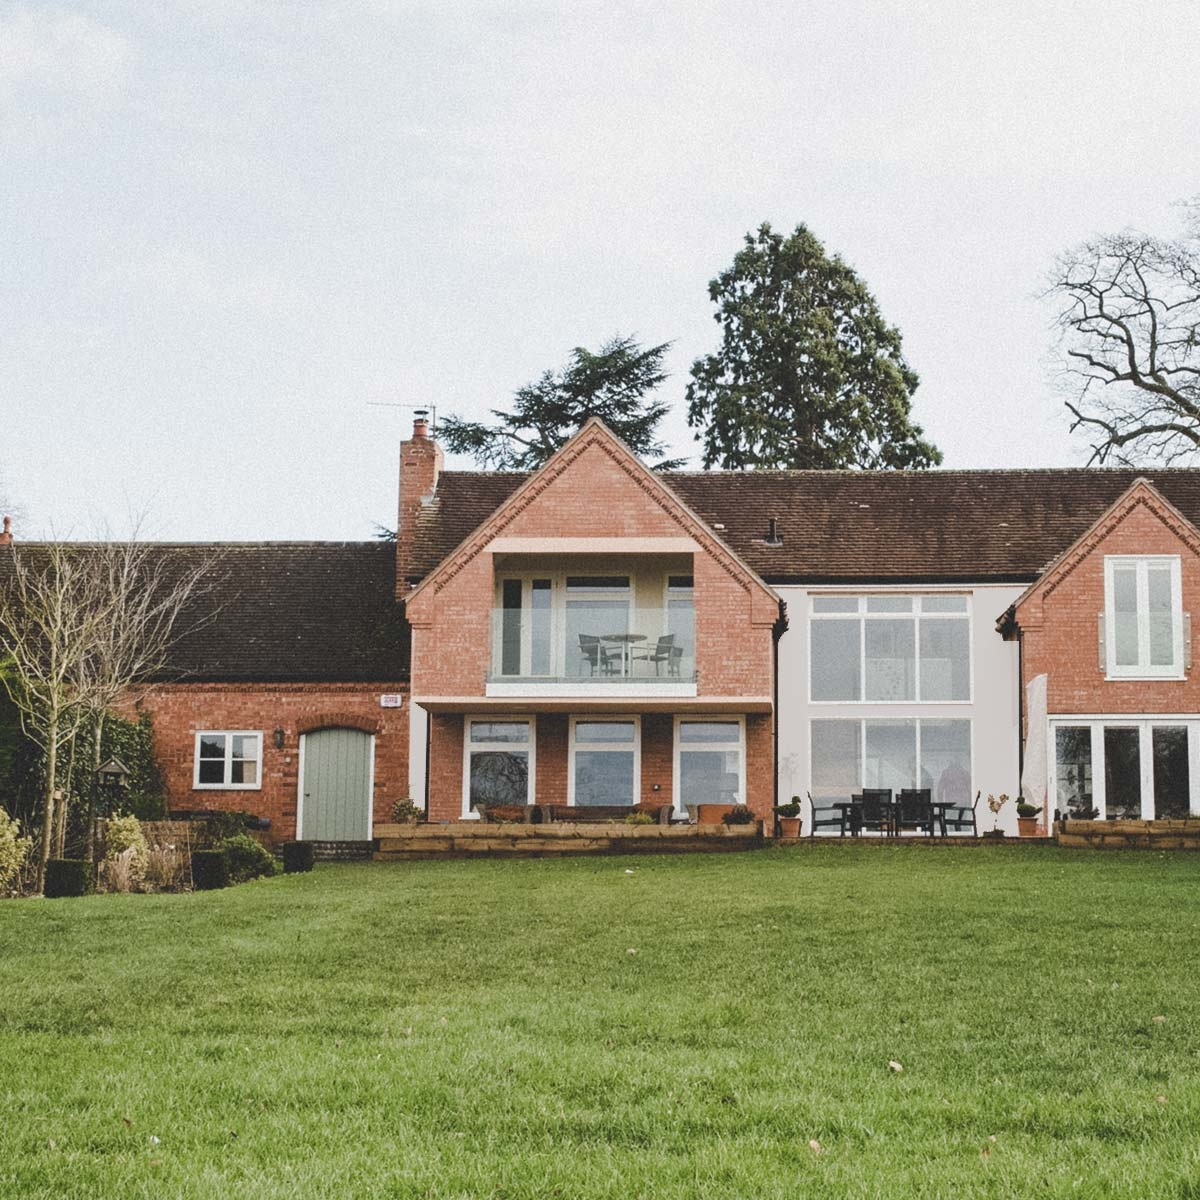 residential_architects_in_leamington_spa_06.jpg